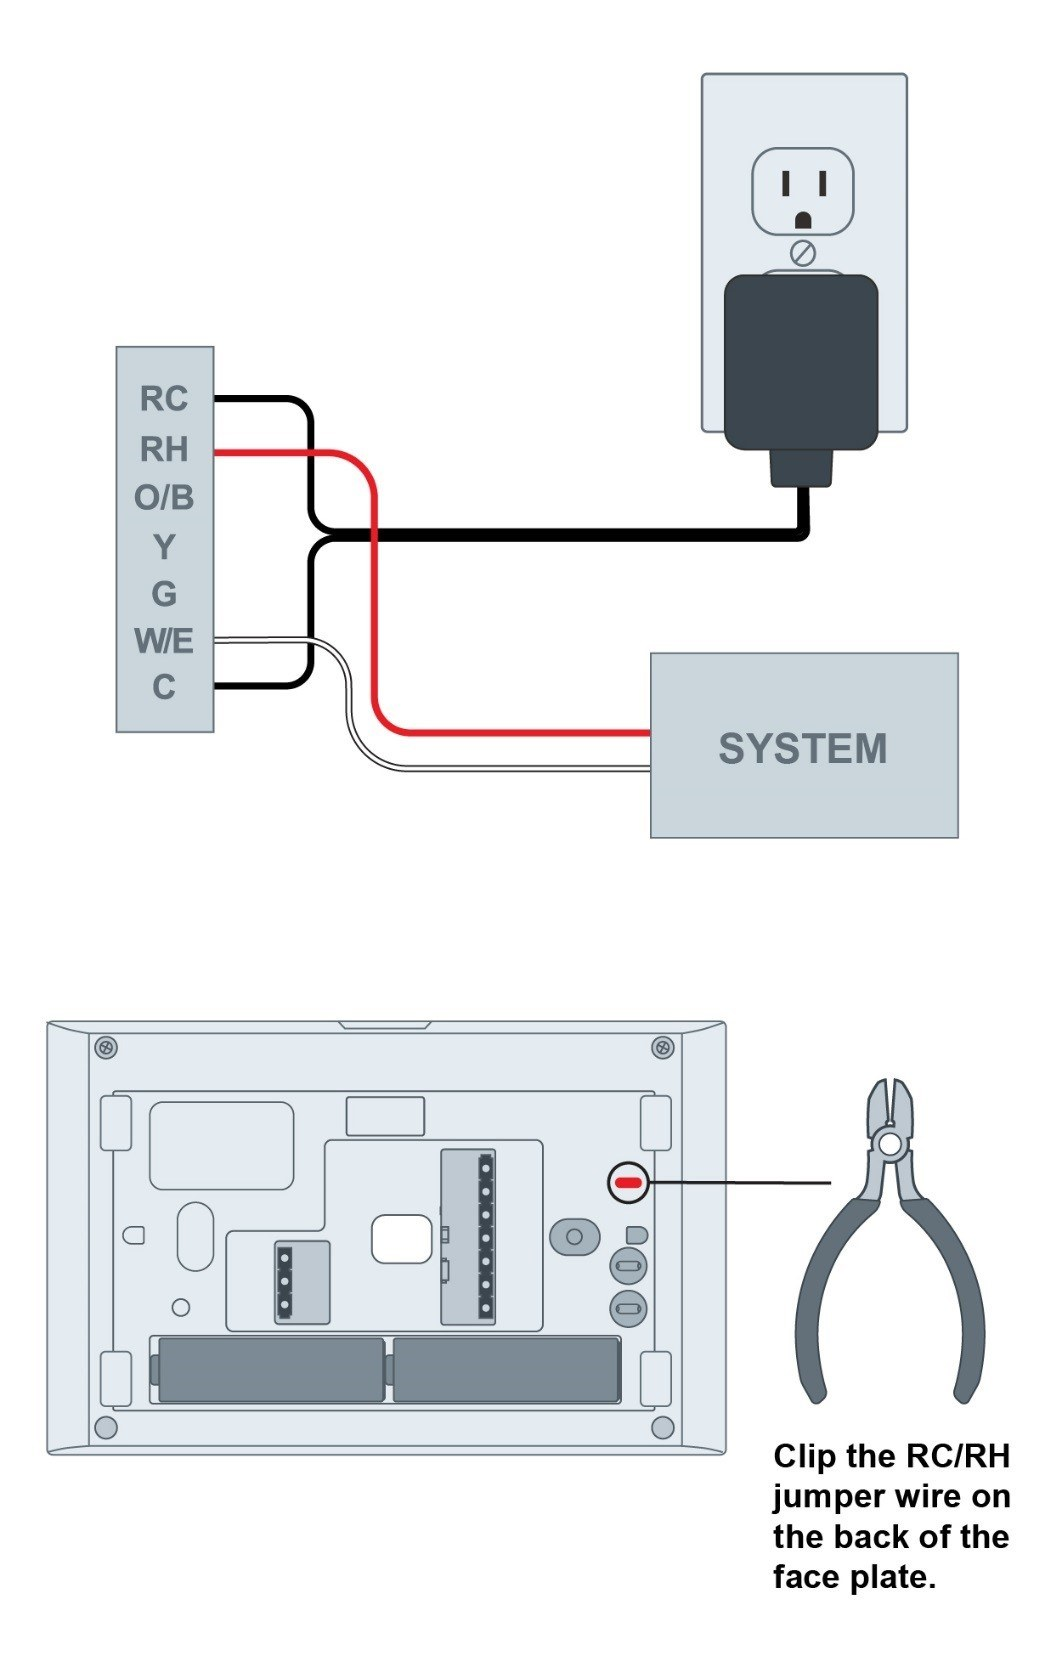 110v Plug Wiring Diagram For Ac Troubleshooting Adding 24 Vac External Transformer In